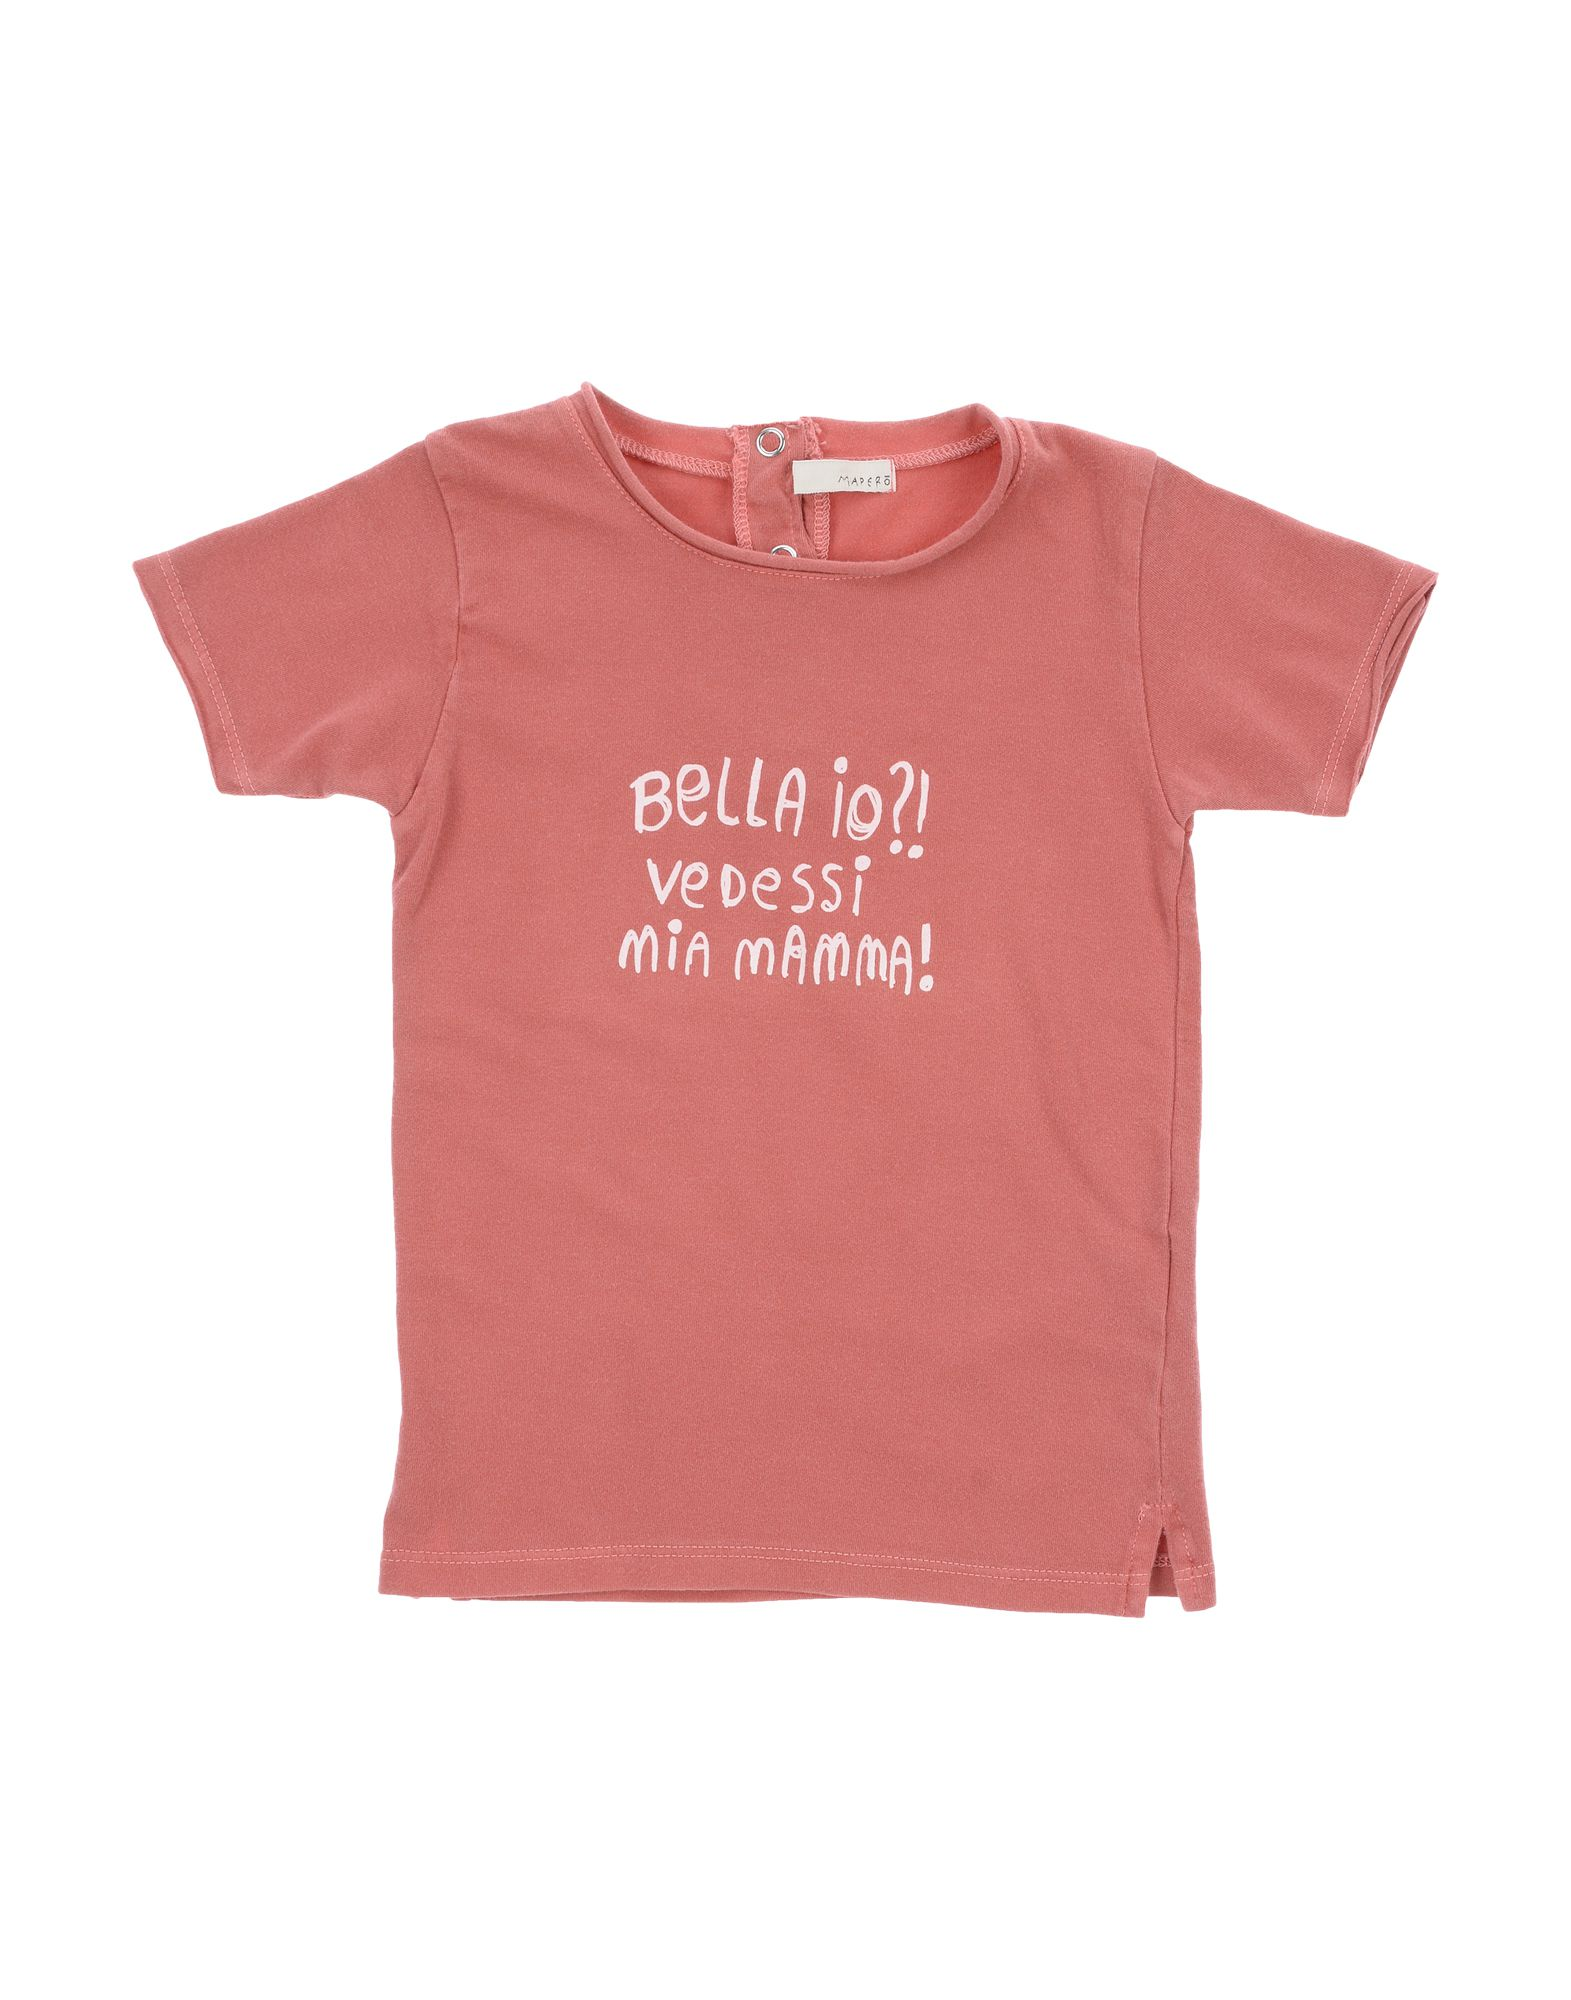 Mapero Kids' T-shirts In Pink